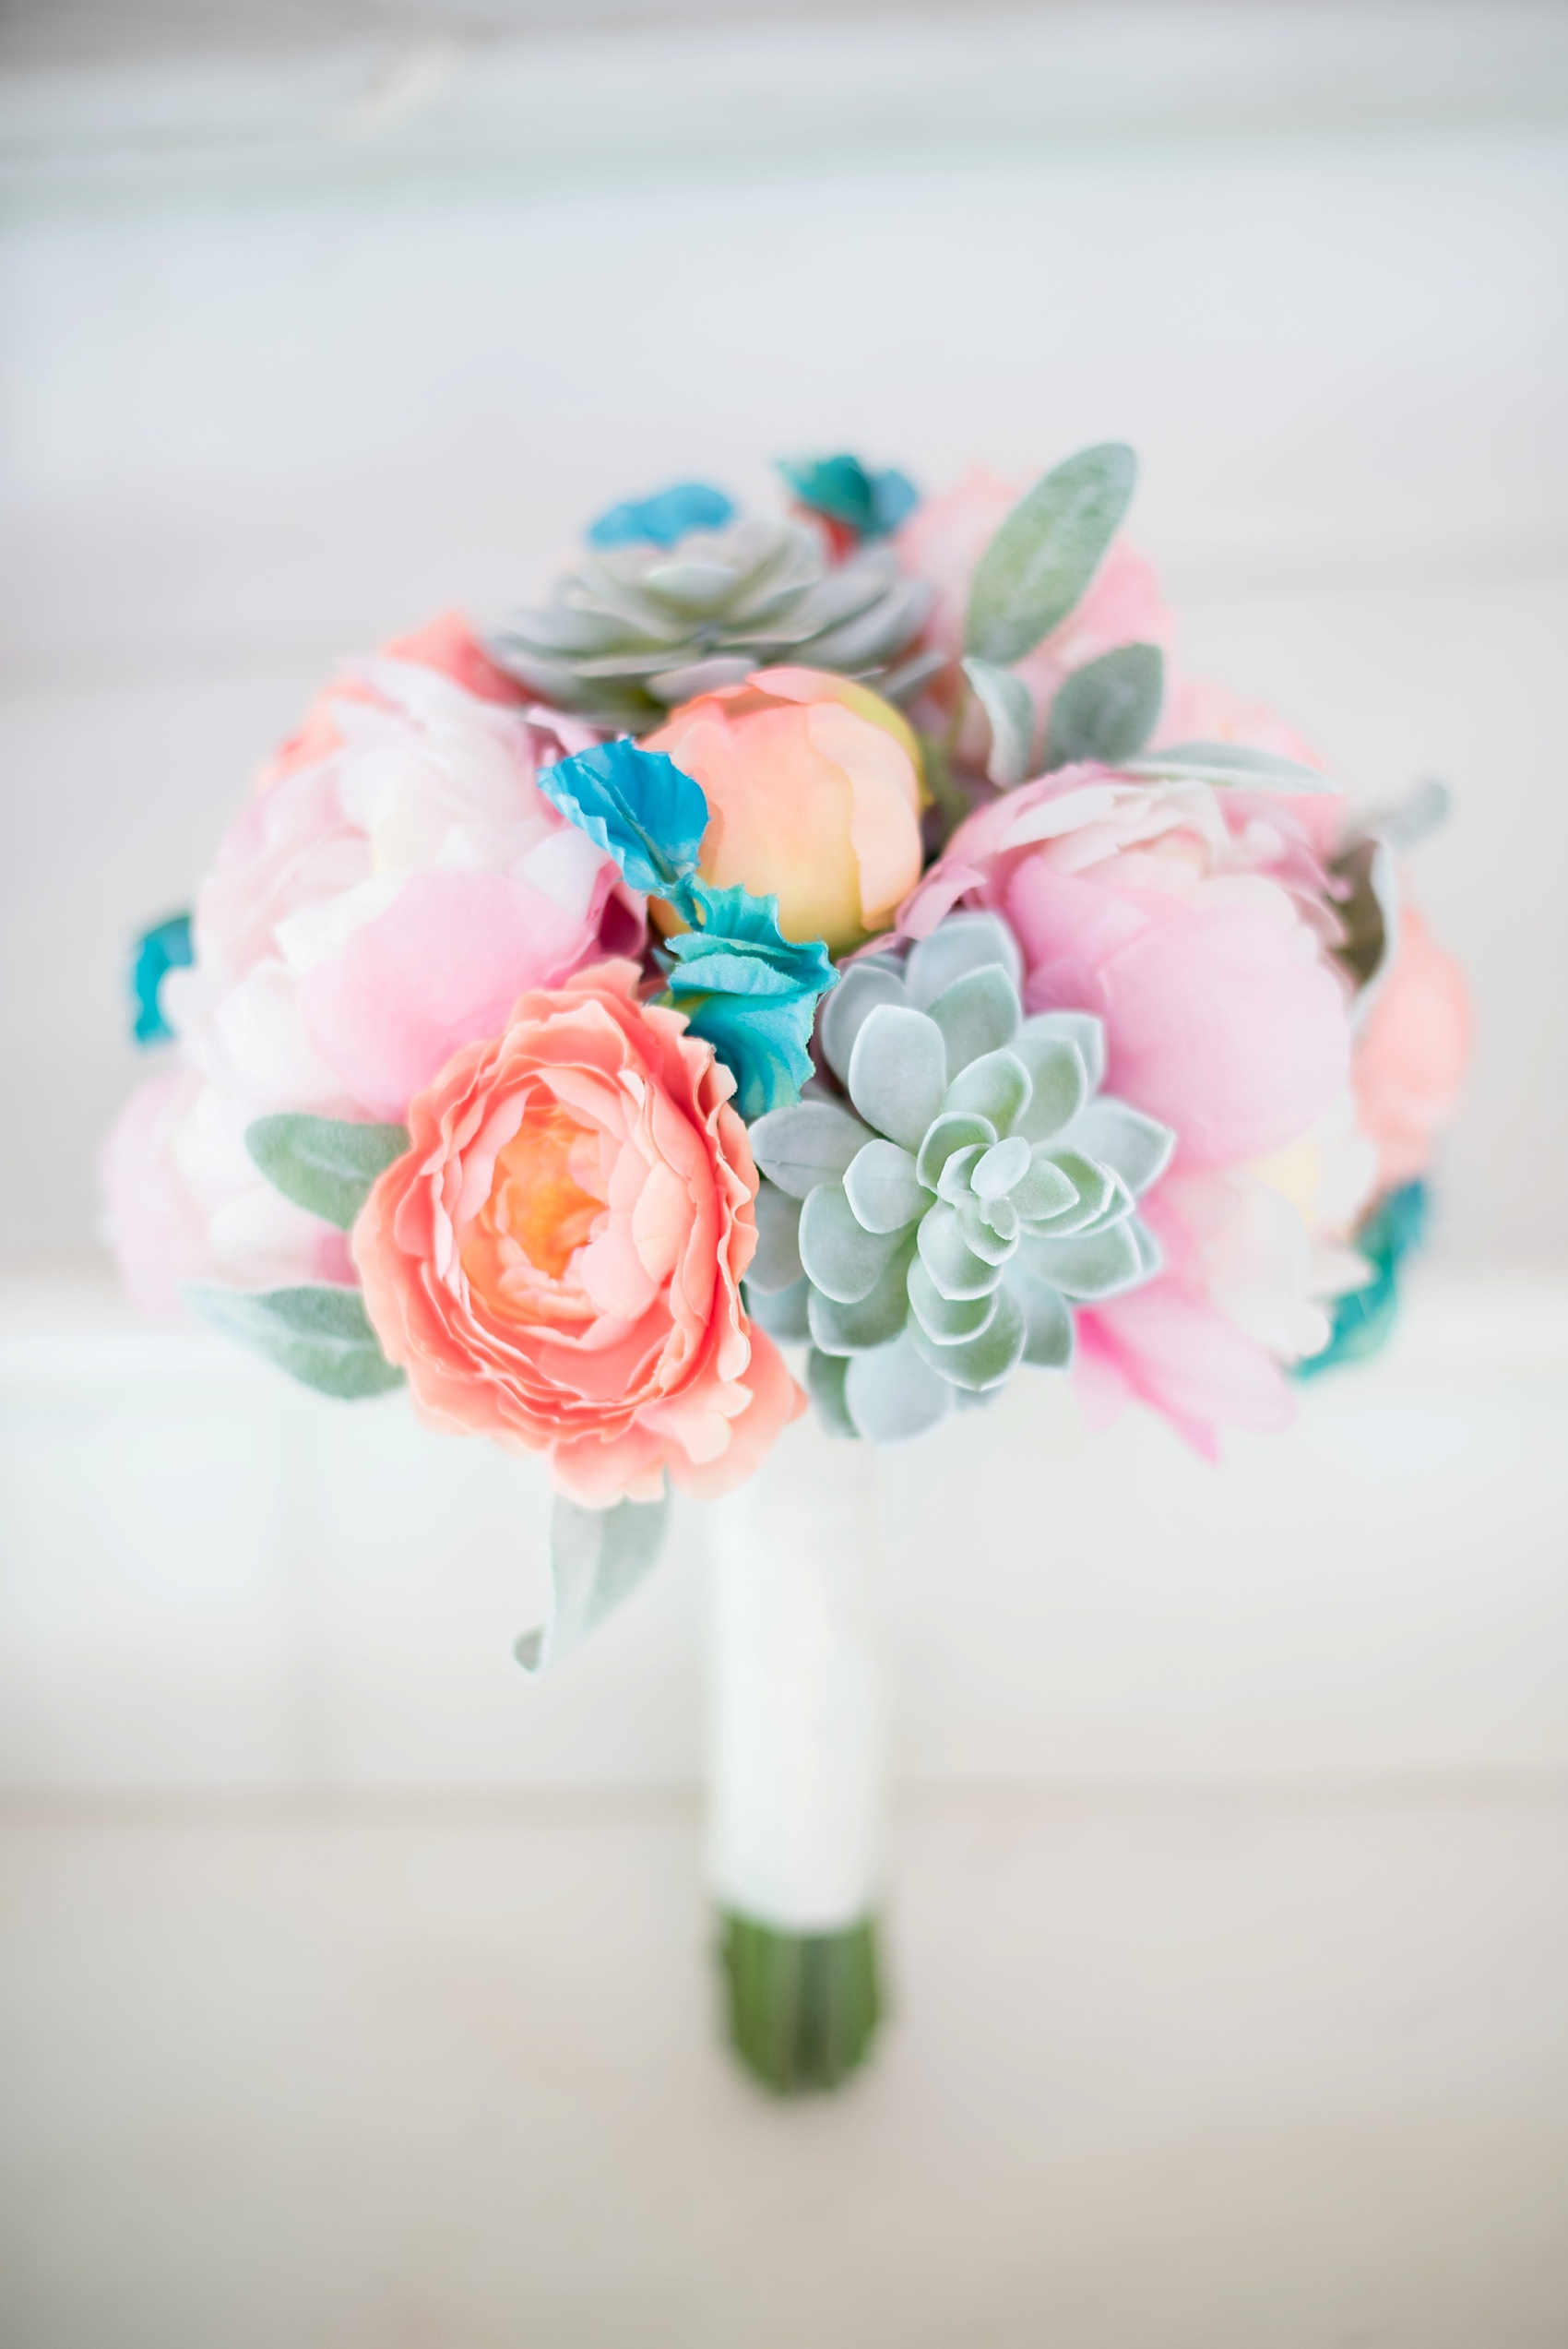 Iberostar Jamaica wedding photos, bride's bouquet with peonies and succulents. Images by Mikkel Paige Photography.